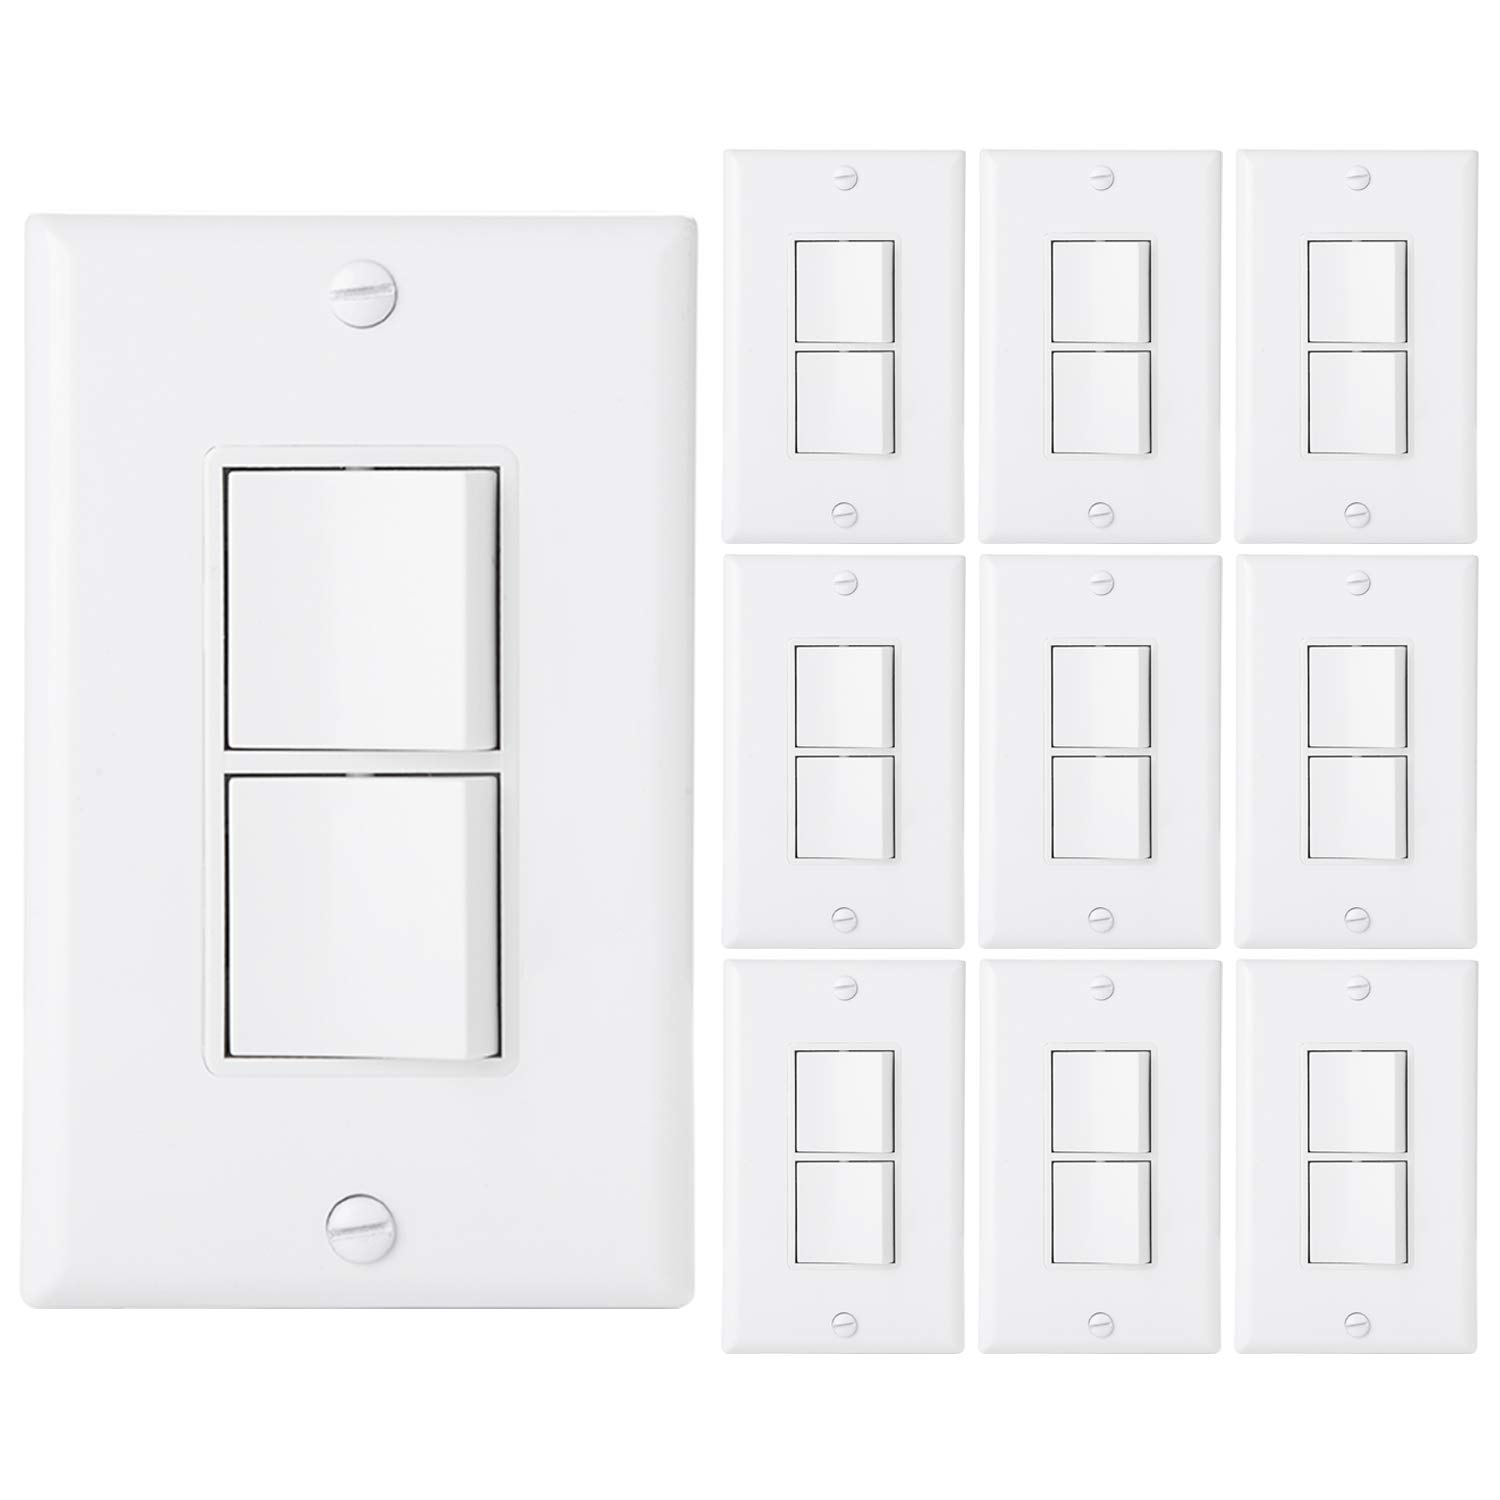 [10 Pack] BESTTEN AC Combination Light Switch, Single-Pole Double ON/Off Interrupter, 15A 120/277V, Dual Control Paddle Rocker, Grounding, Residential & Commercial Grade, Wall Plate Included, White